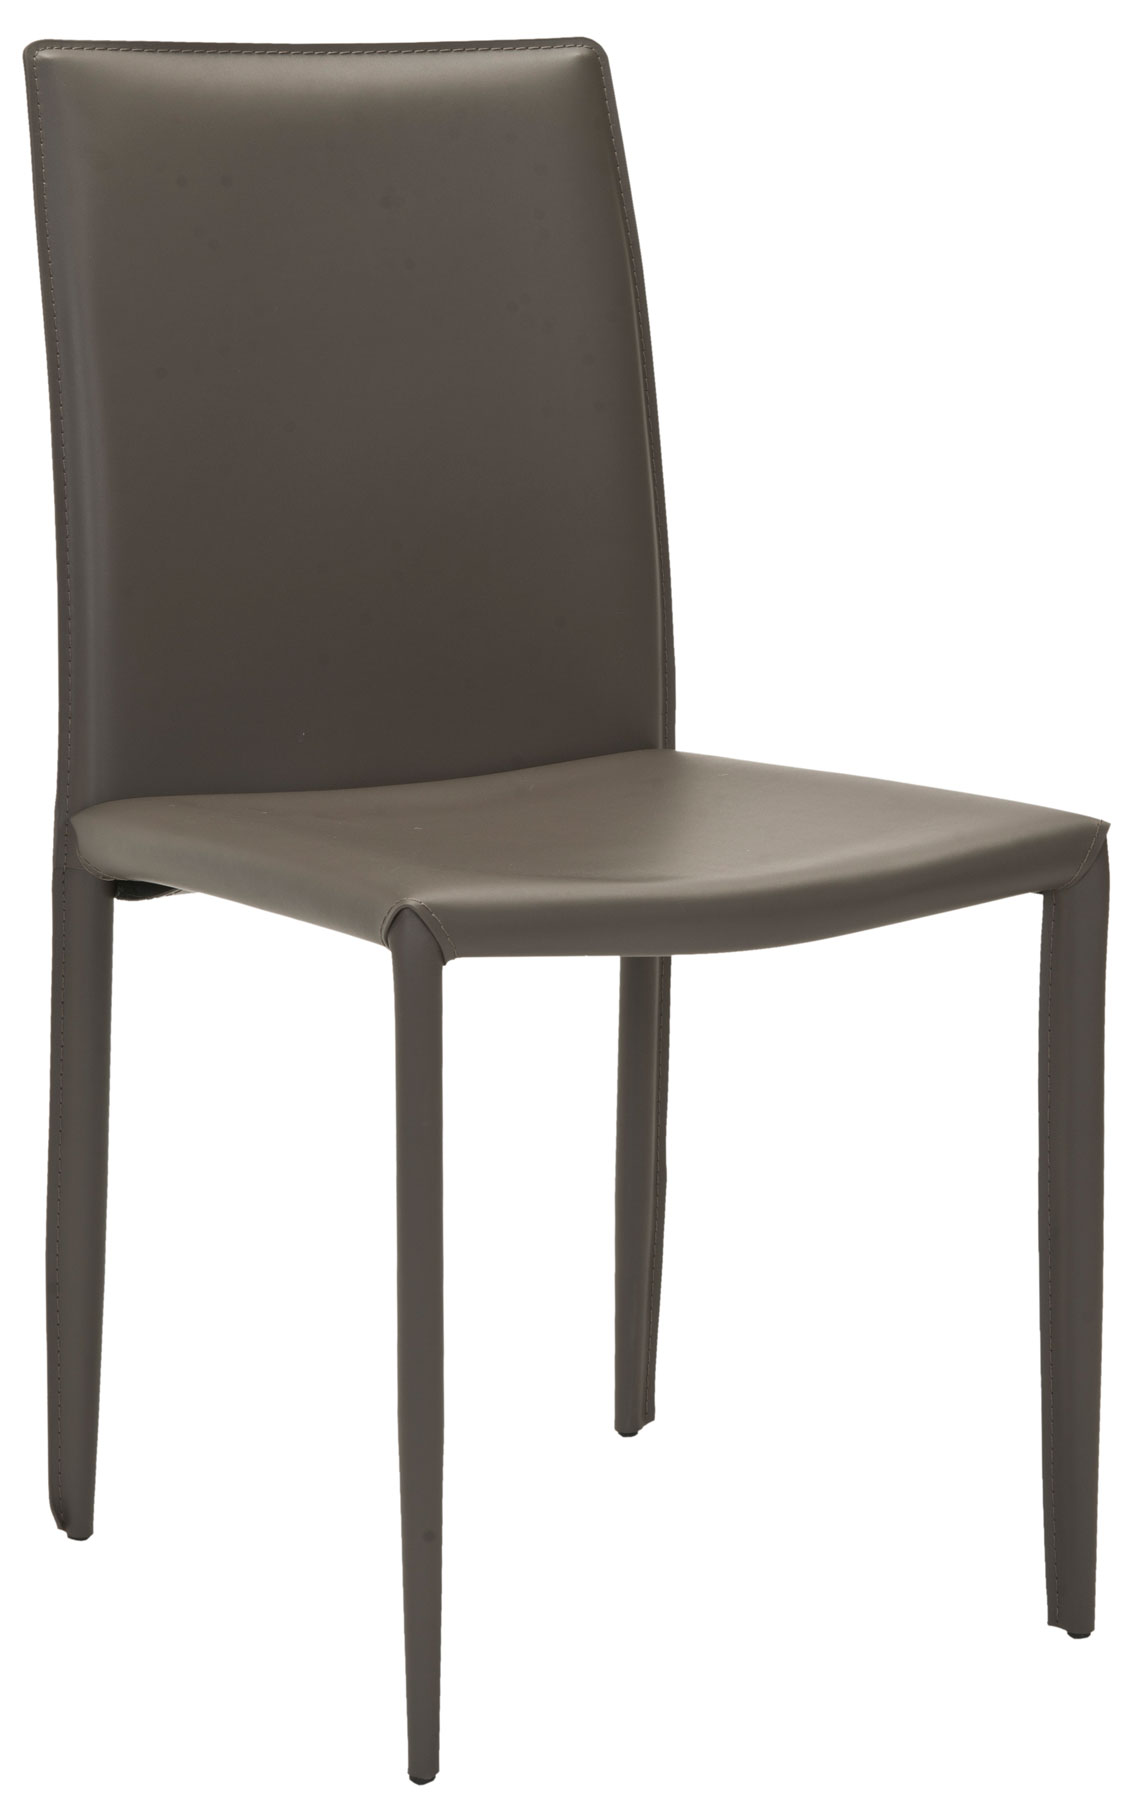 Fox2009d Set2 Dining Chairs Furniture By Safavieh